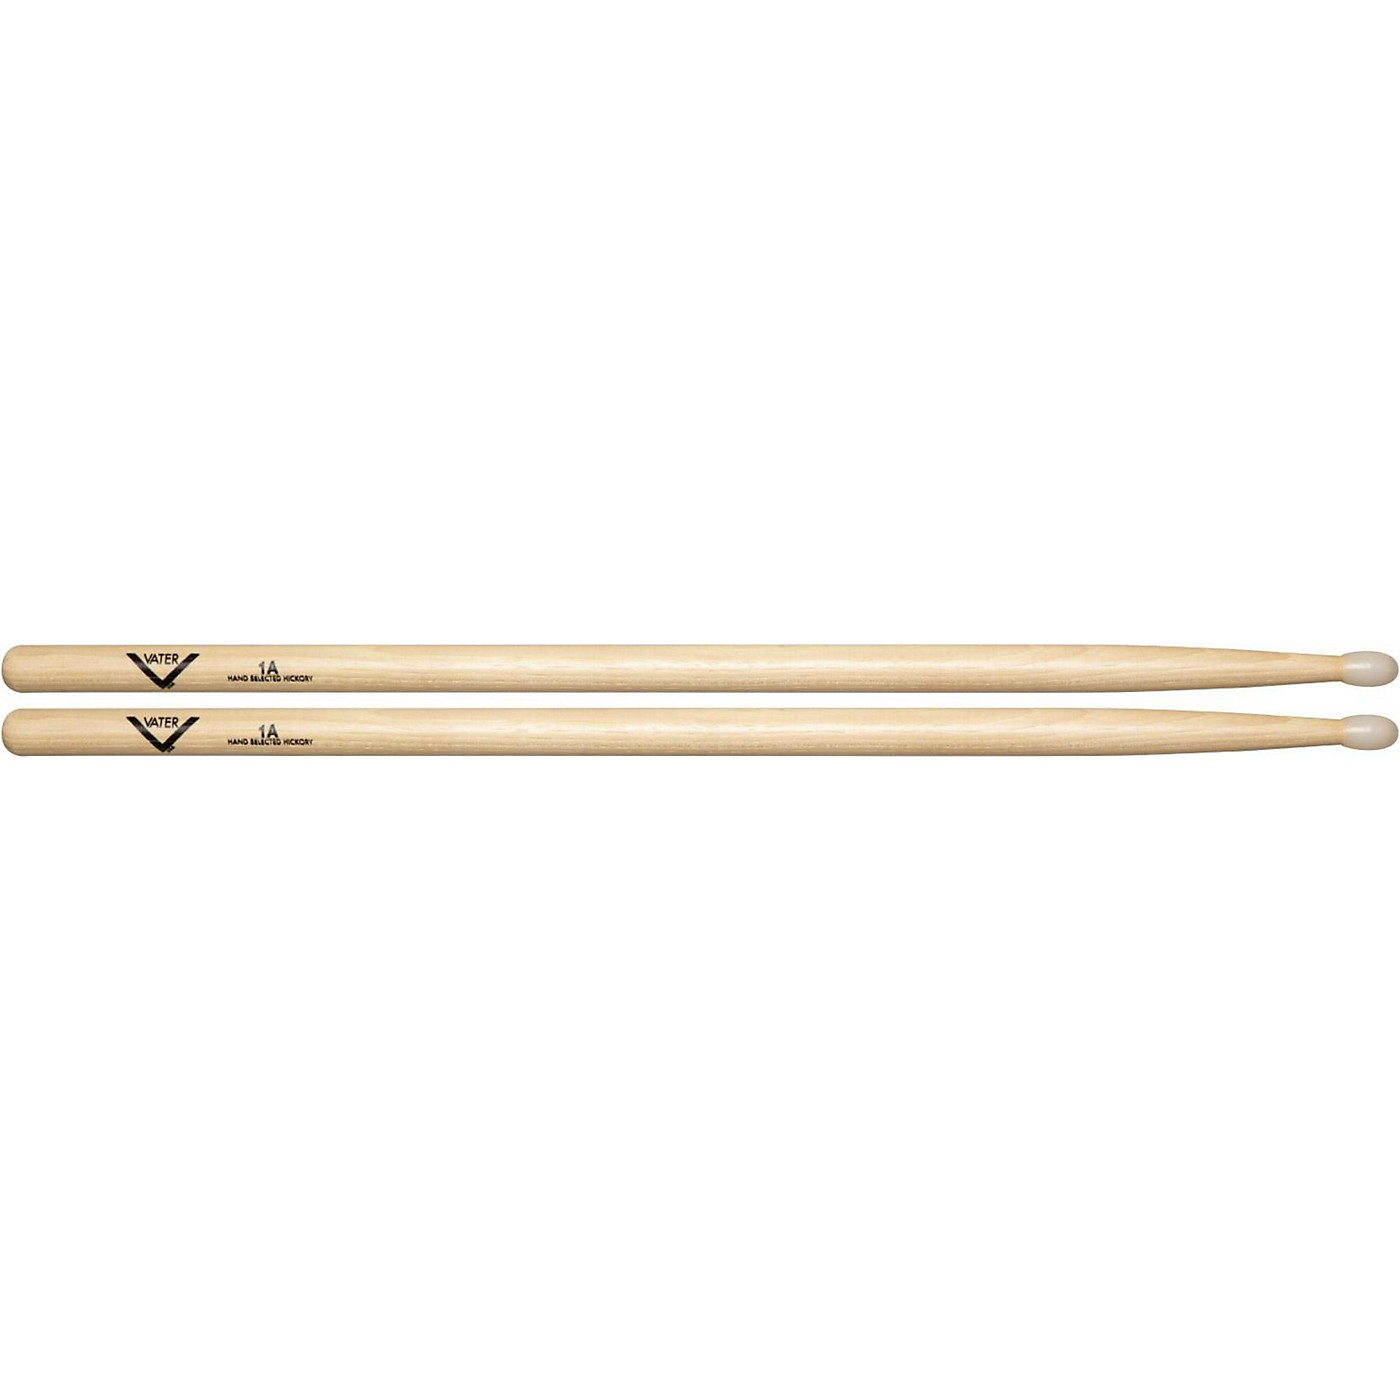 Vater American Hickory 1A Drum Sticks thumbnail